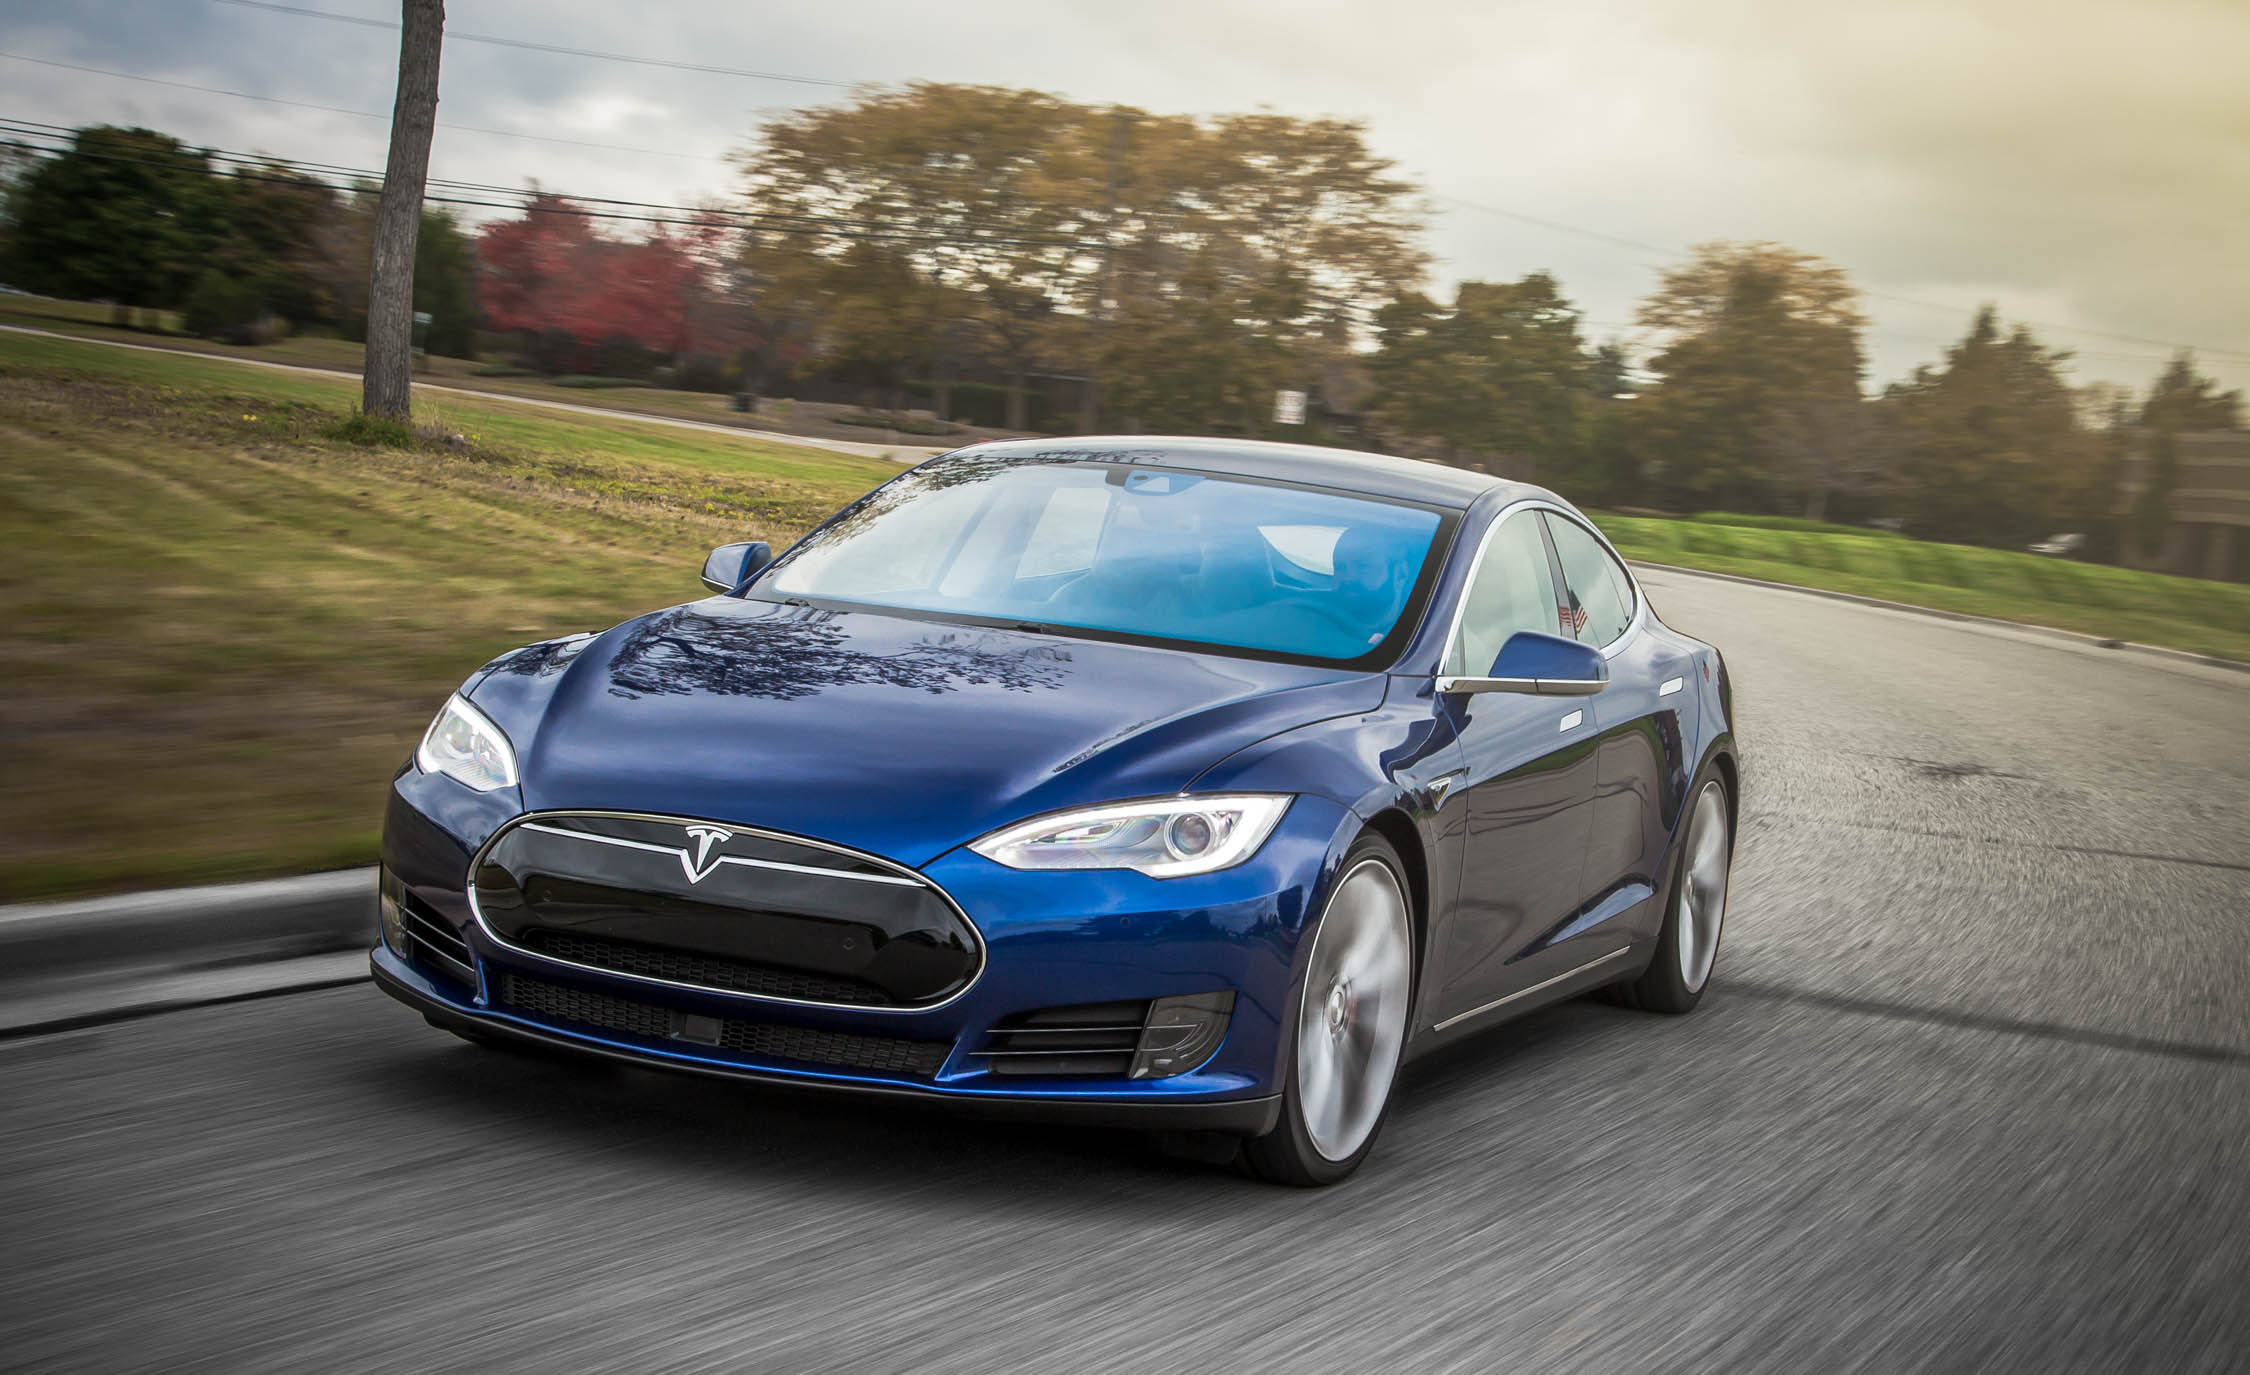 2015 Tesla Model S P90D Full Front and Side